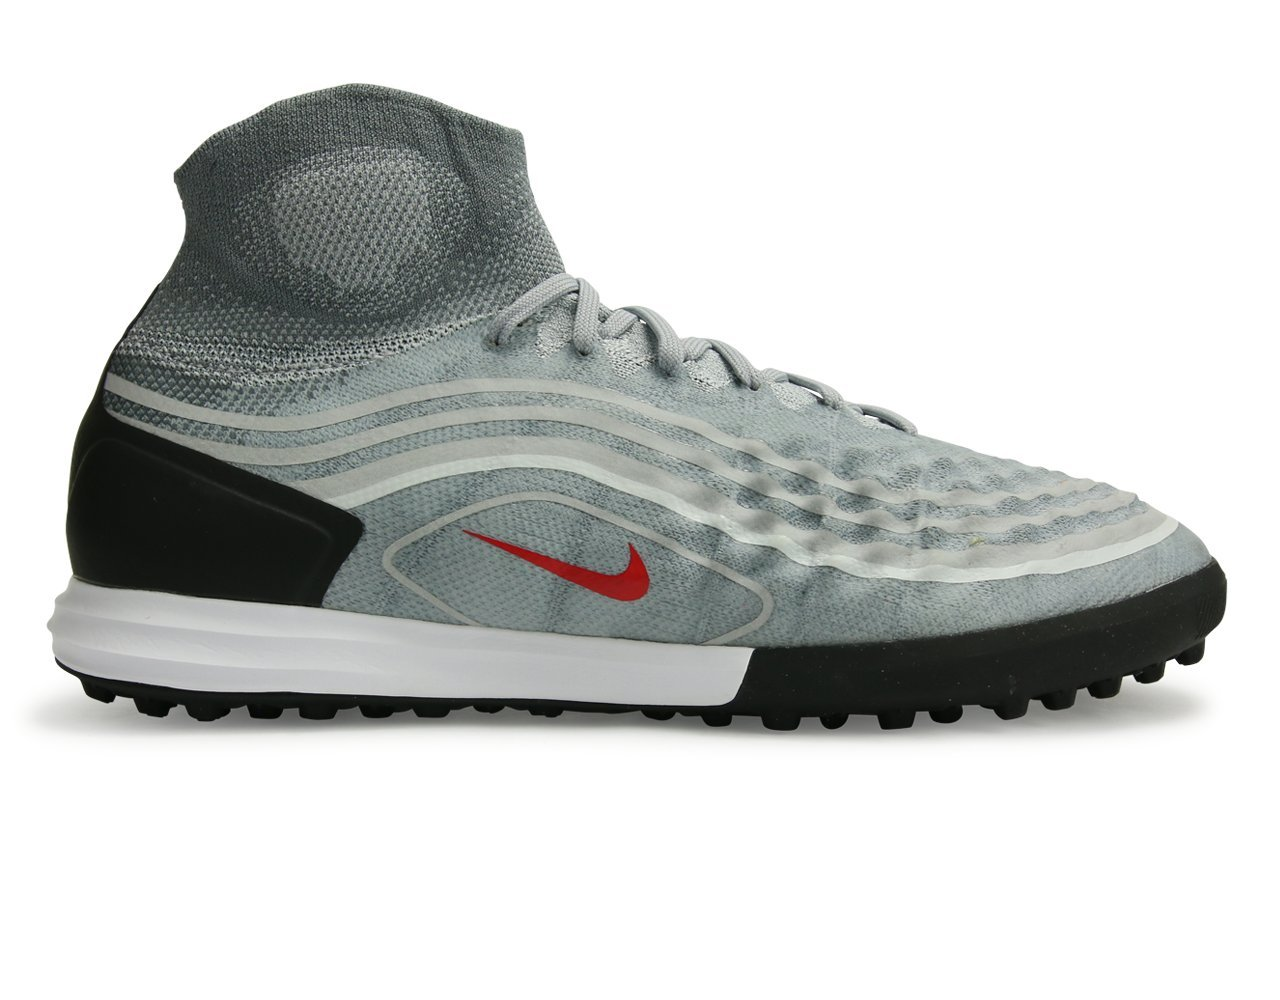 NIKE Mens Magistax Proximo II IC Lunarlon Non Marking Soccer Shoes B071S2WVHL 12 N US|Cool Grey/Varsity Red/Black